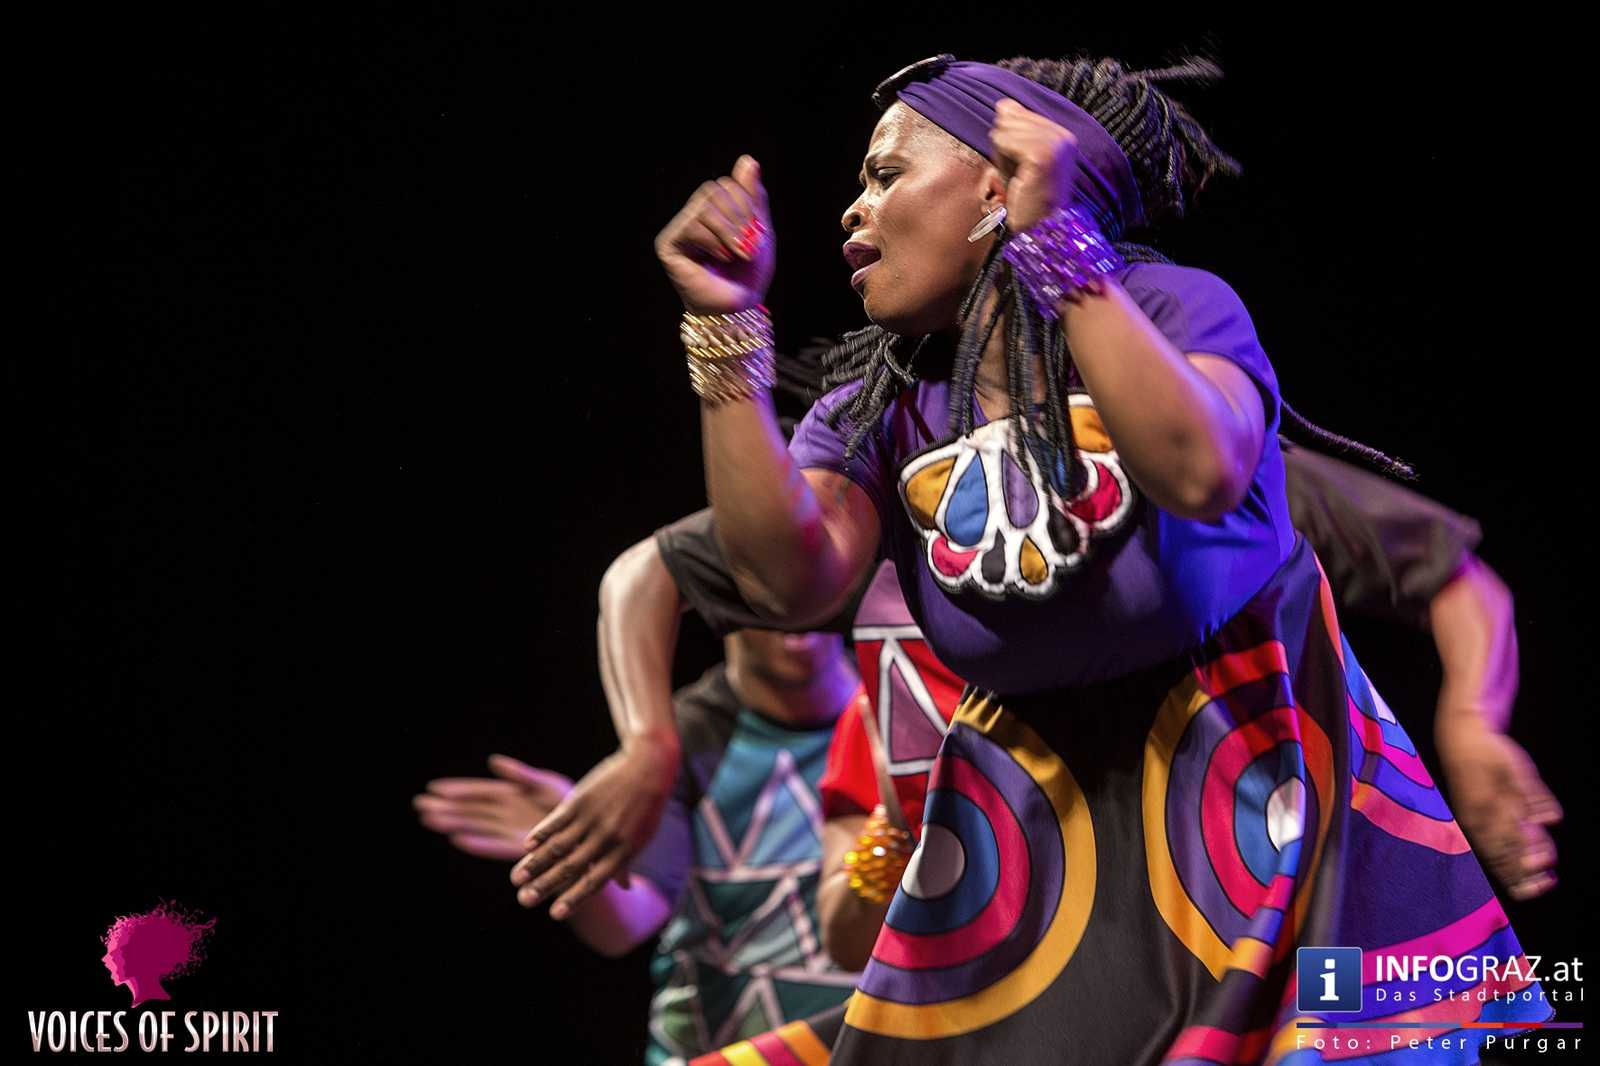 soweto gospel choir internationales chorfestival statdthalle graz voices of spirit eroeffnung festivals 2016 052